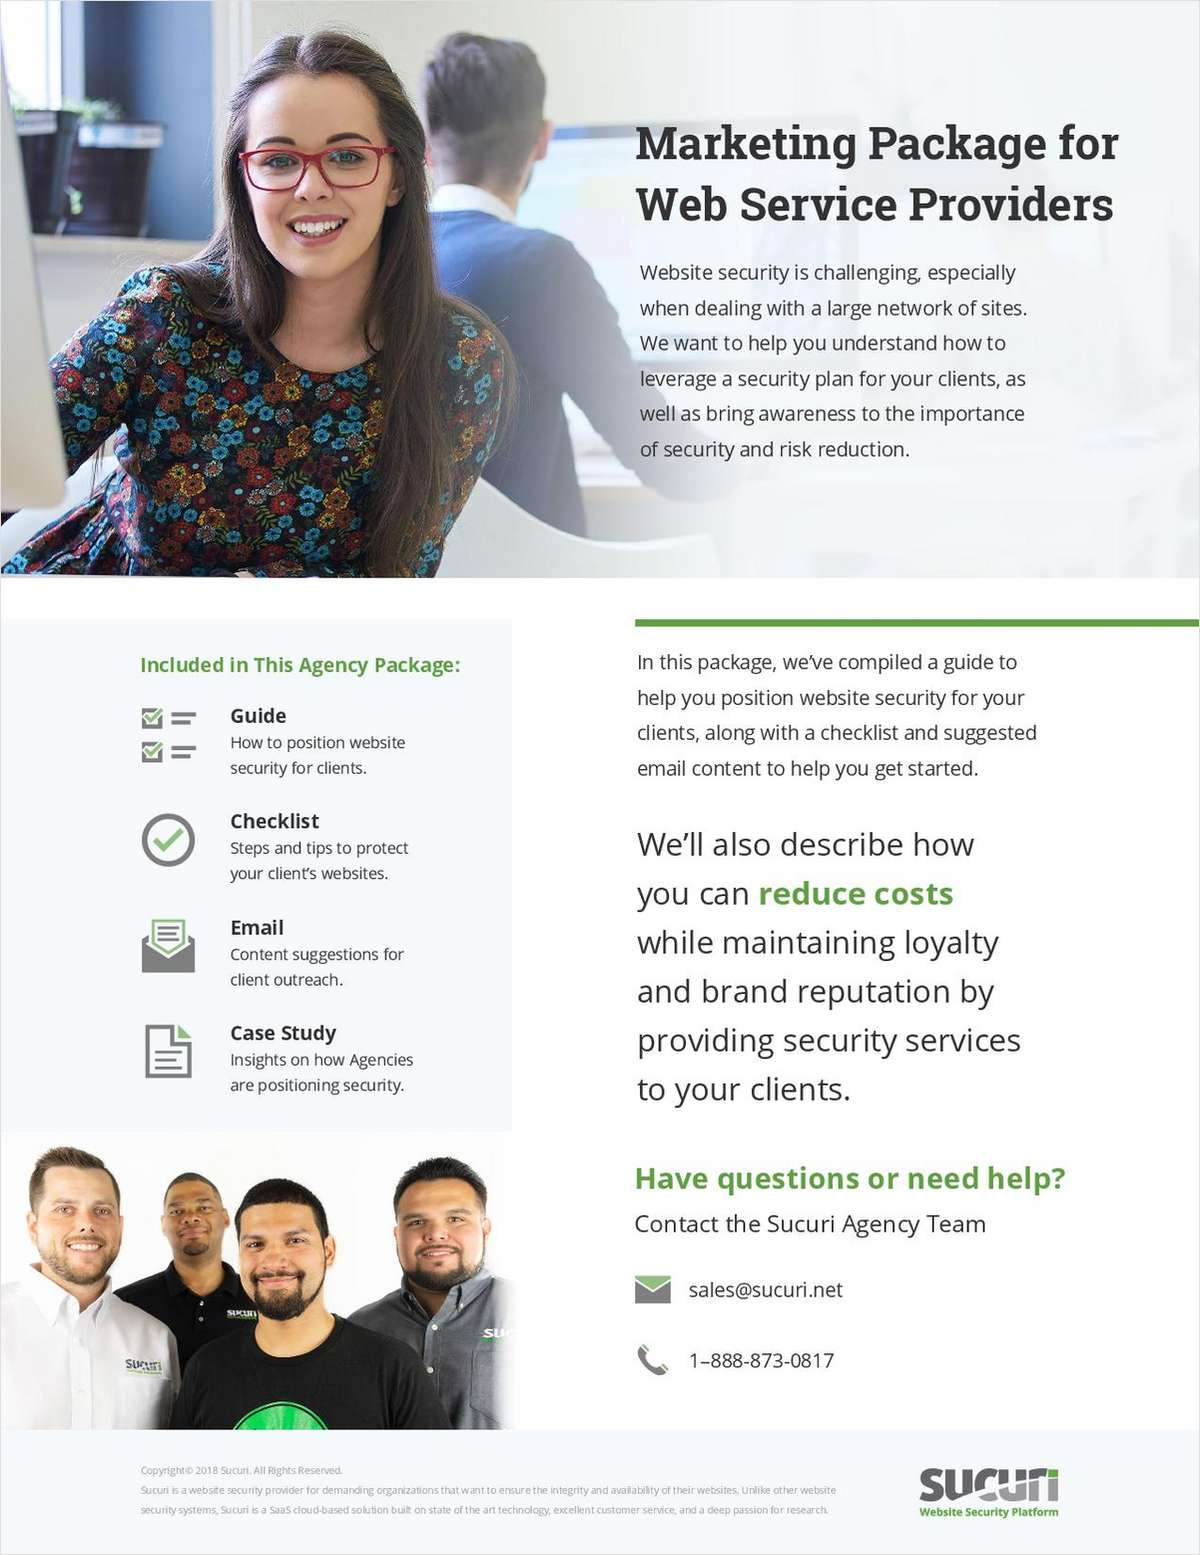 The Marketing Package for Web Service Providers